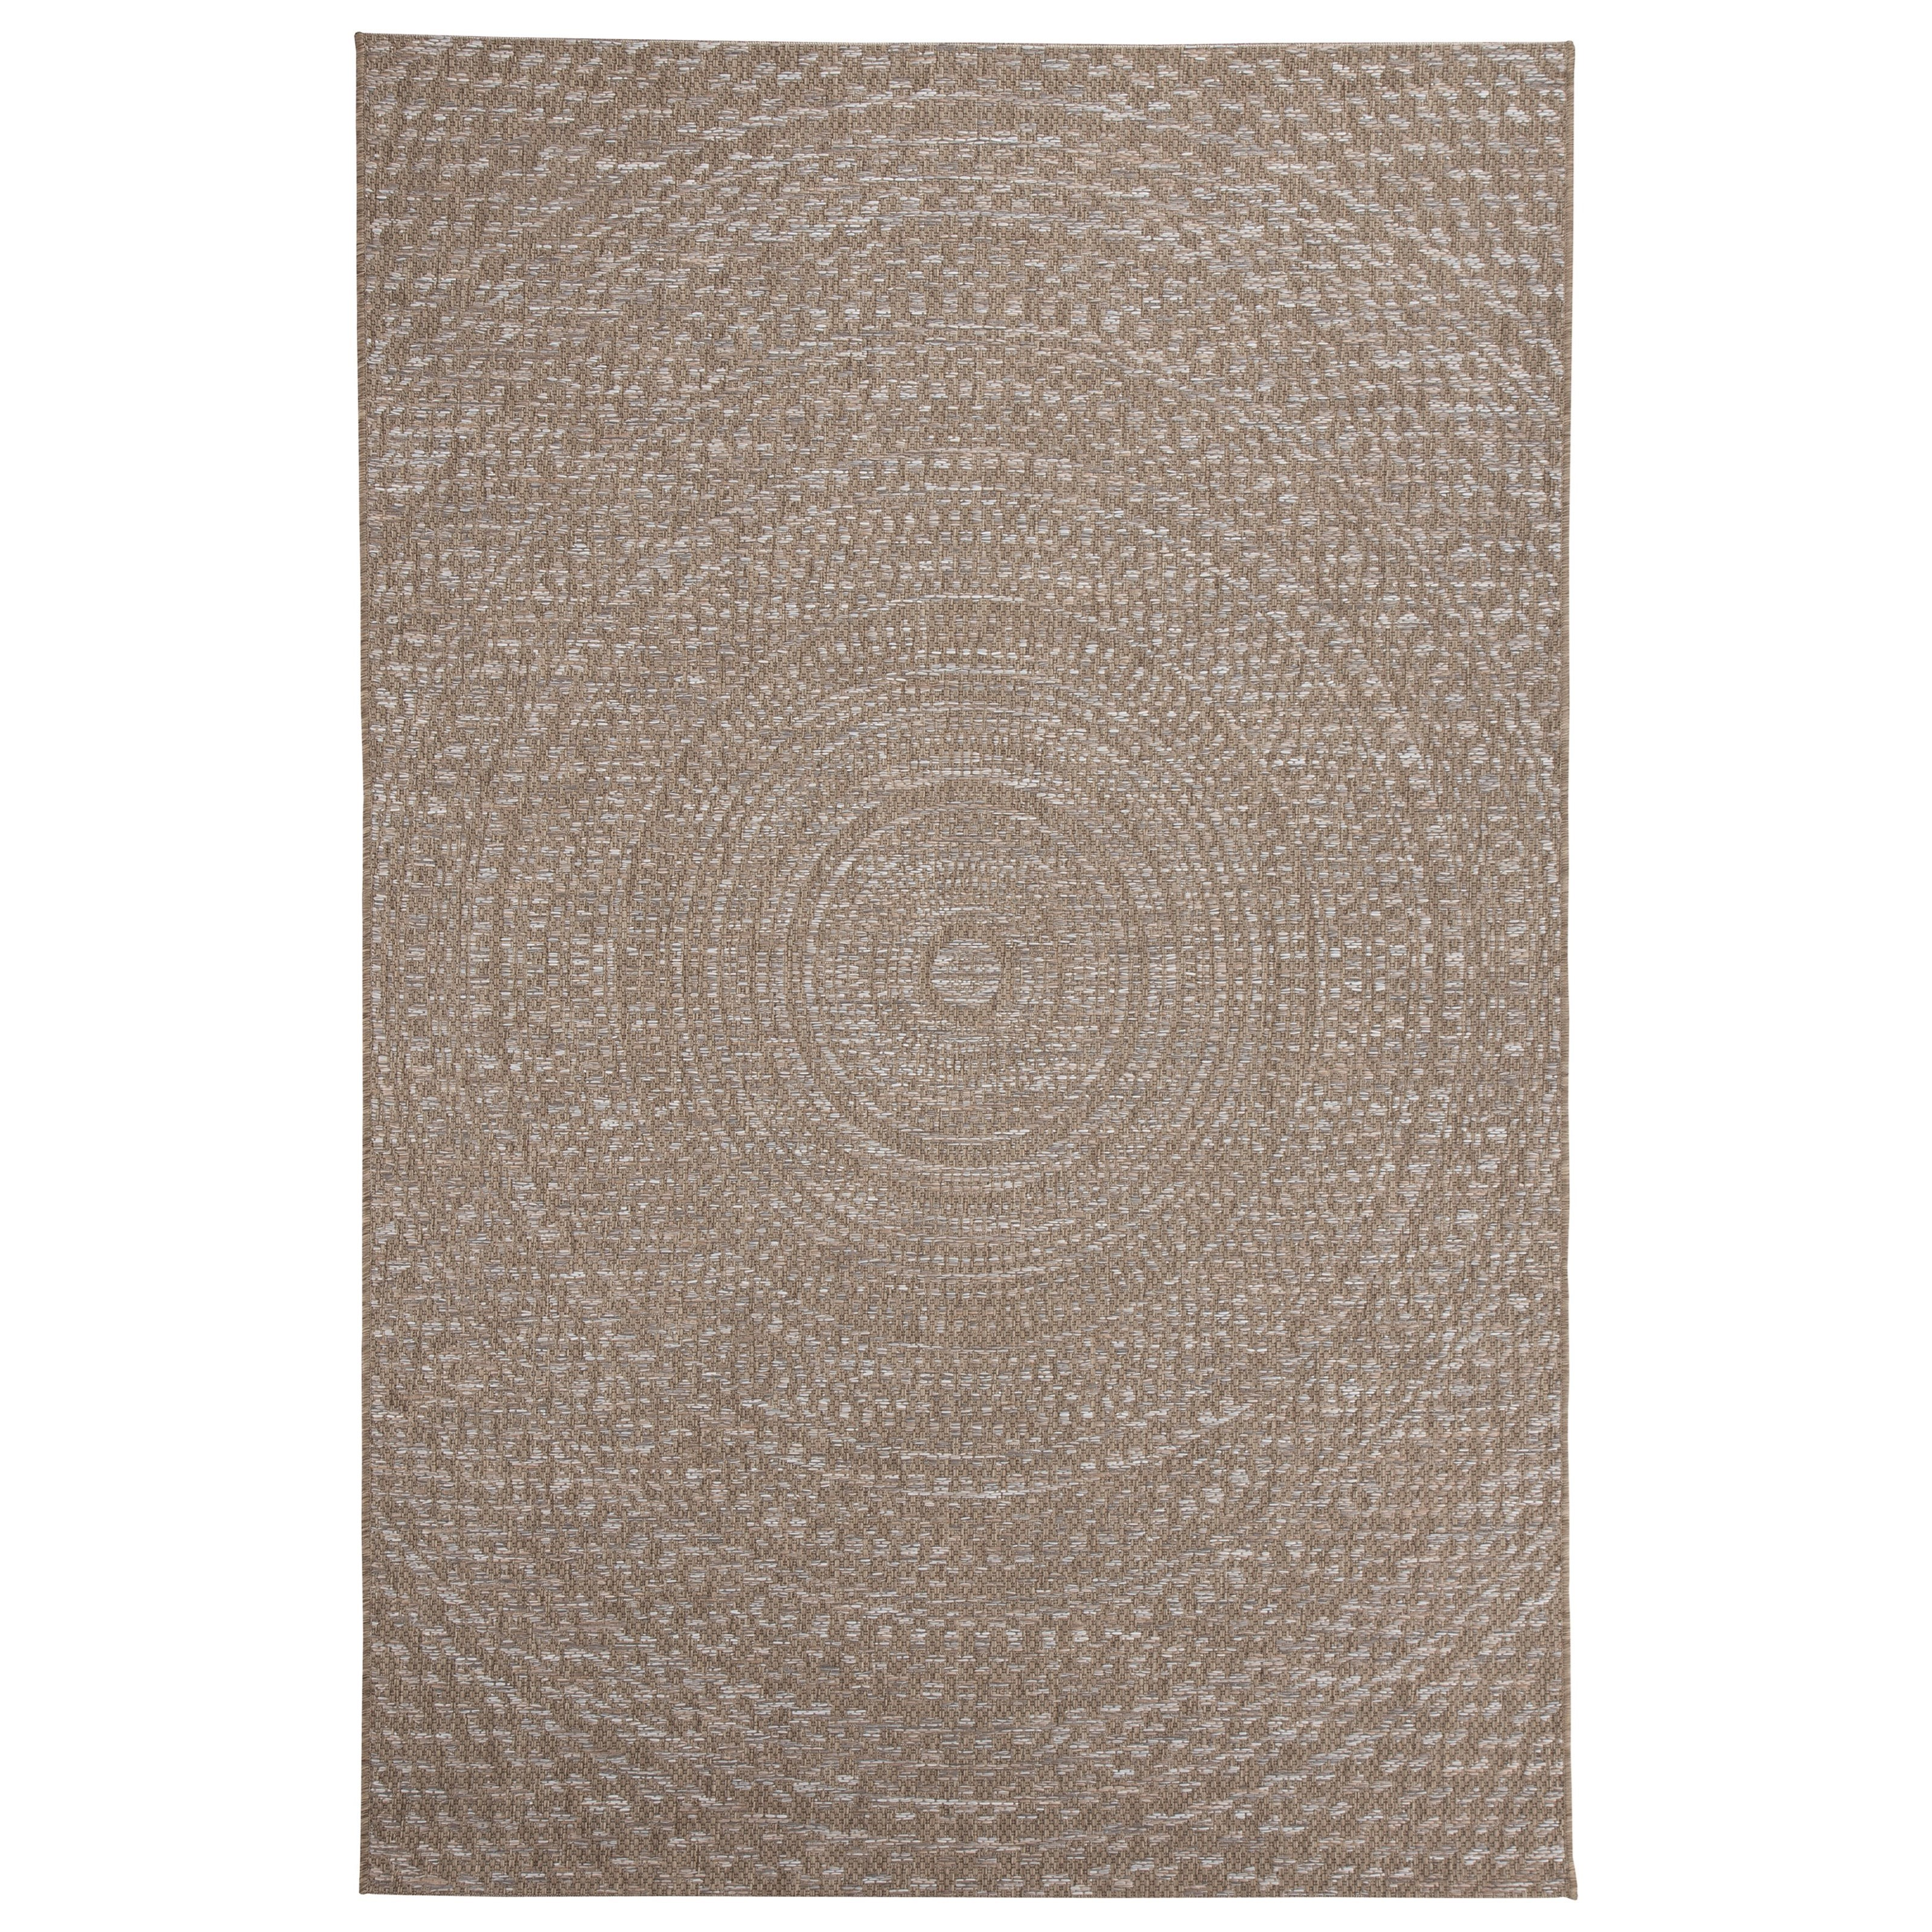 Signature Design by Ashley Casual Area Rugs Larber Gray Medium Rug - Item Number: R401832